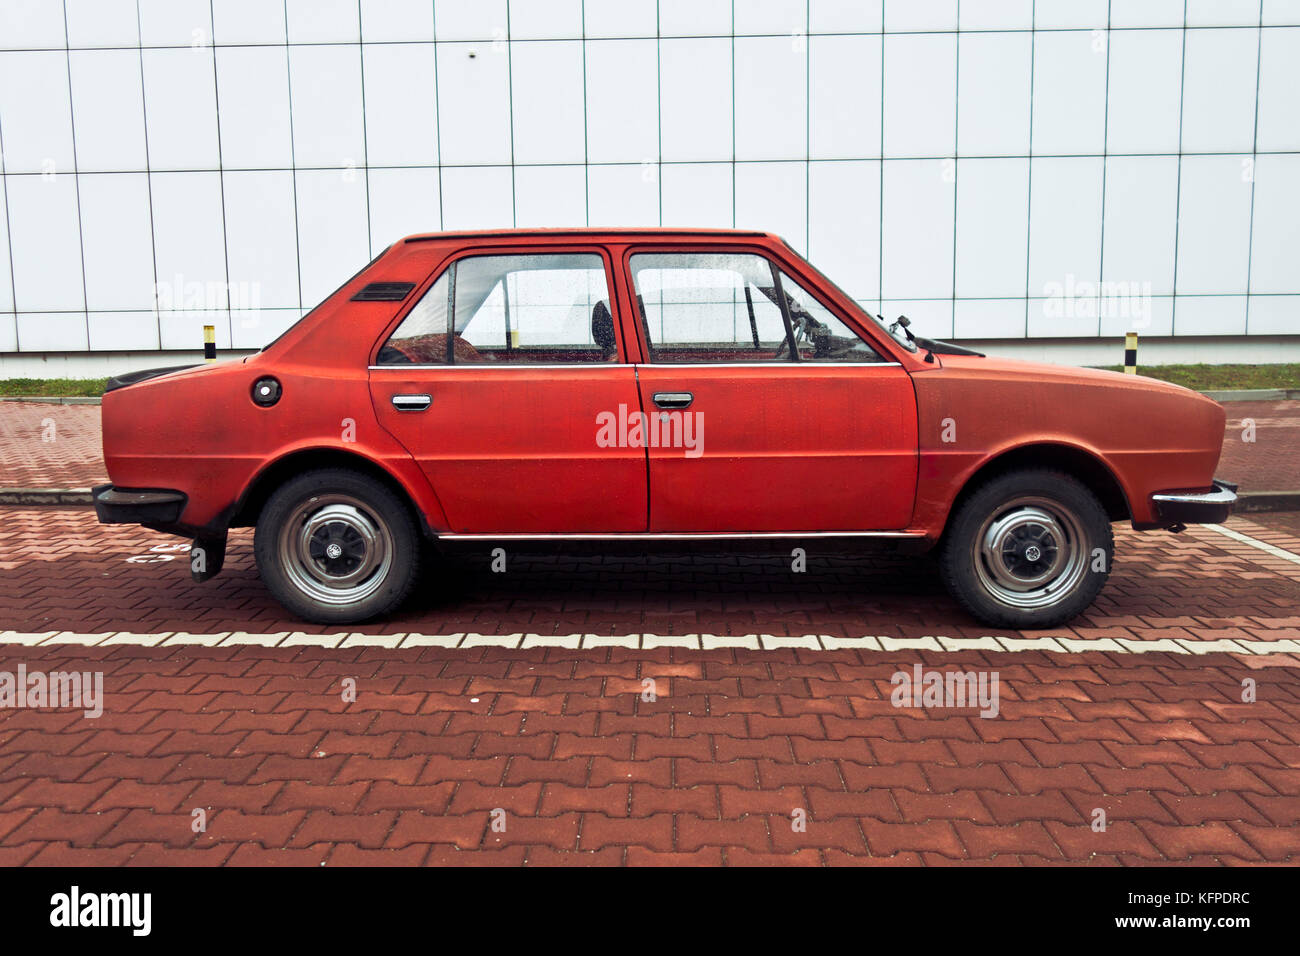 Skoda 120L car, this model was discontinued in 1990 - Stock Image